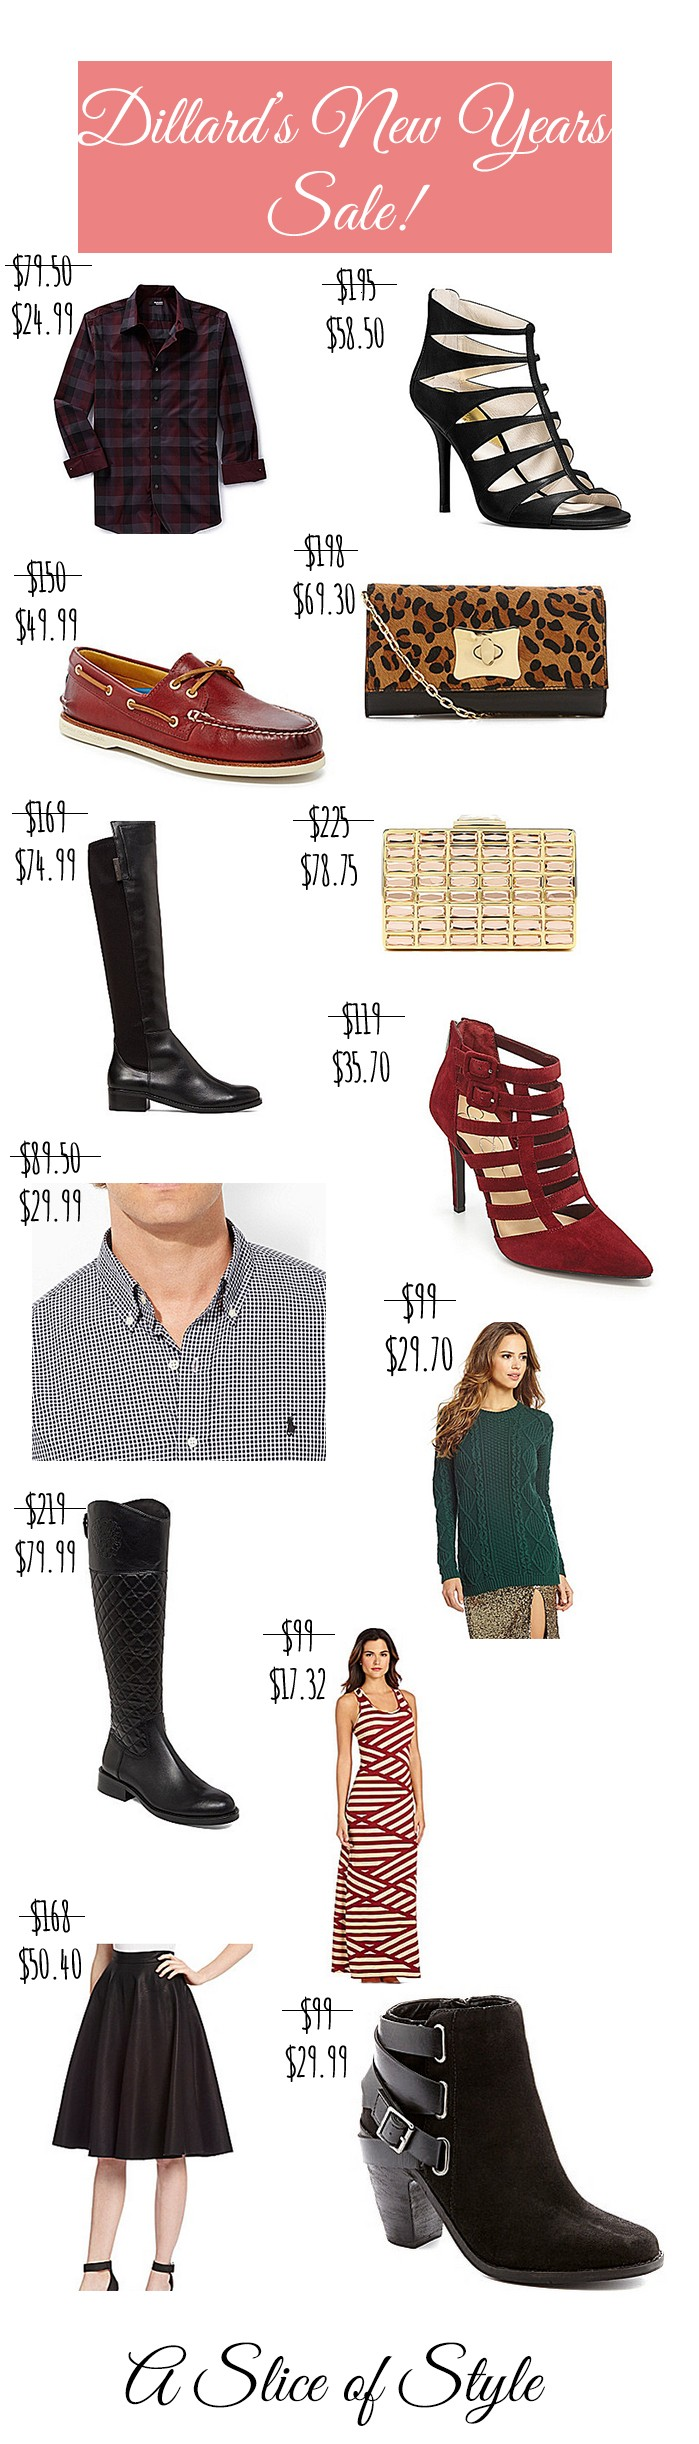 Dillard's New Years Sale favorites featured by top US life and style blog, A Slice of Style